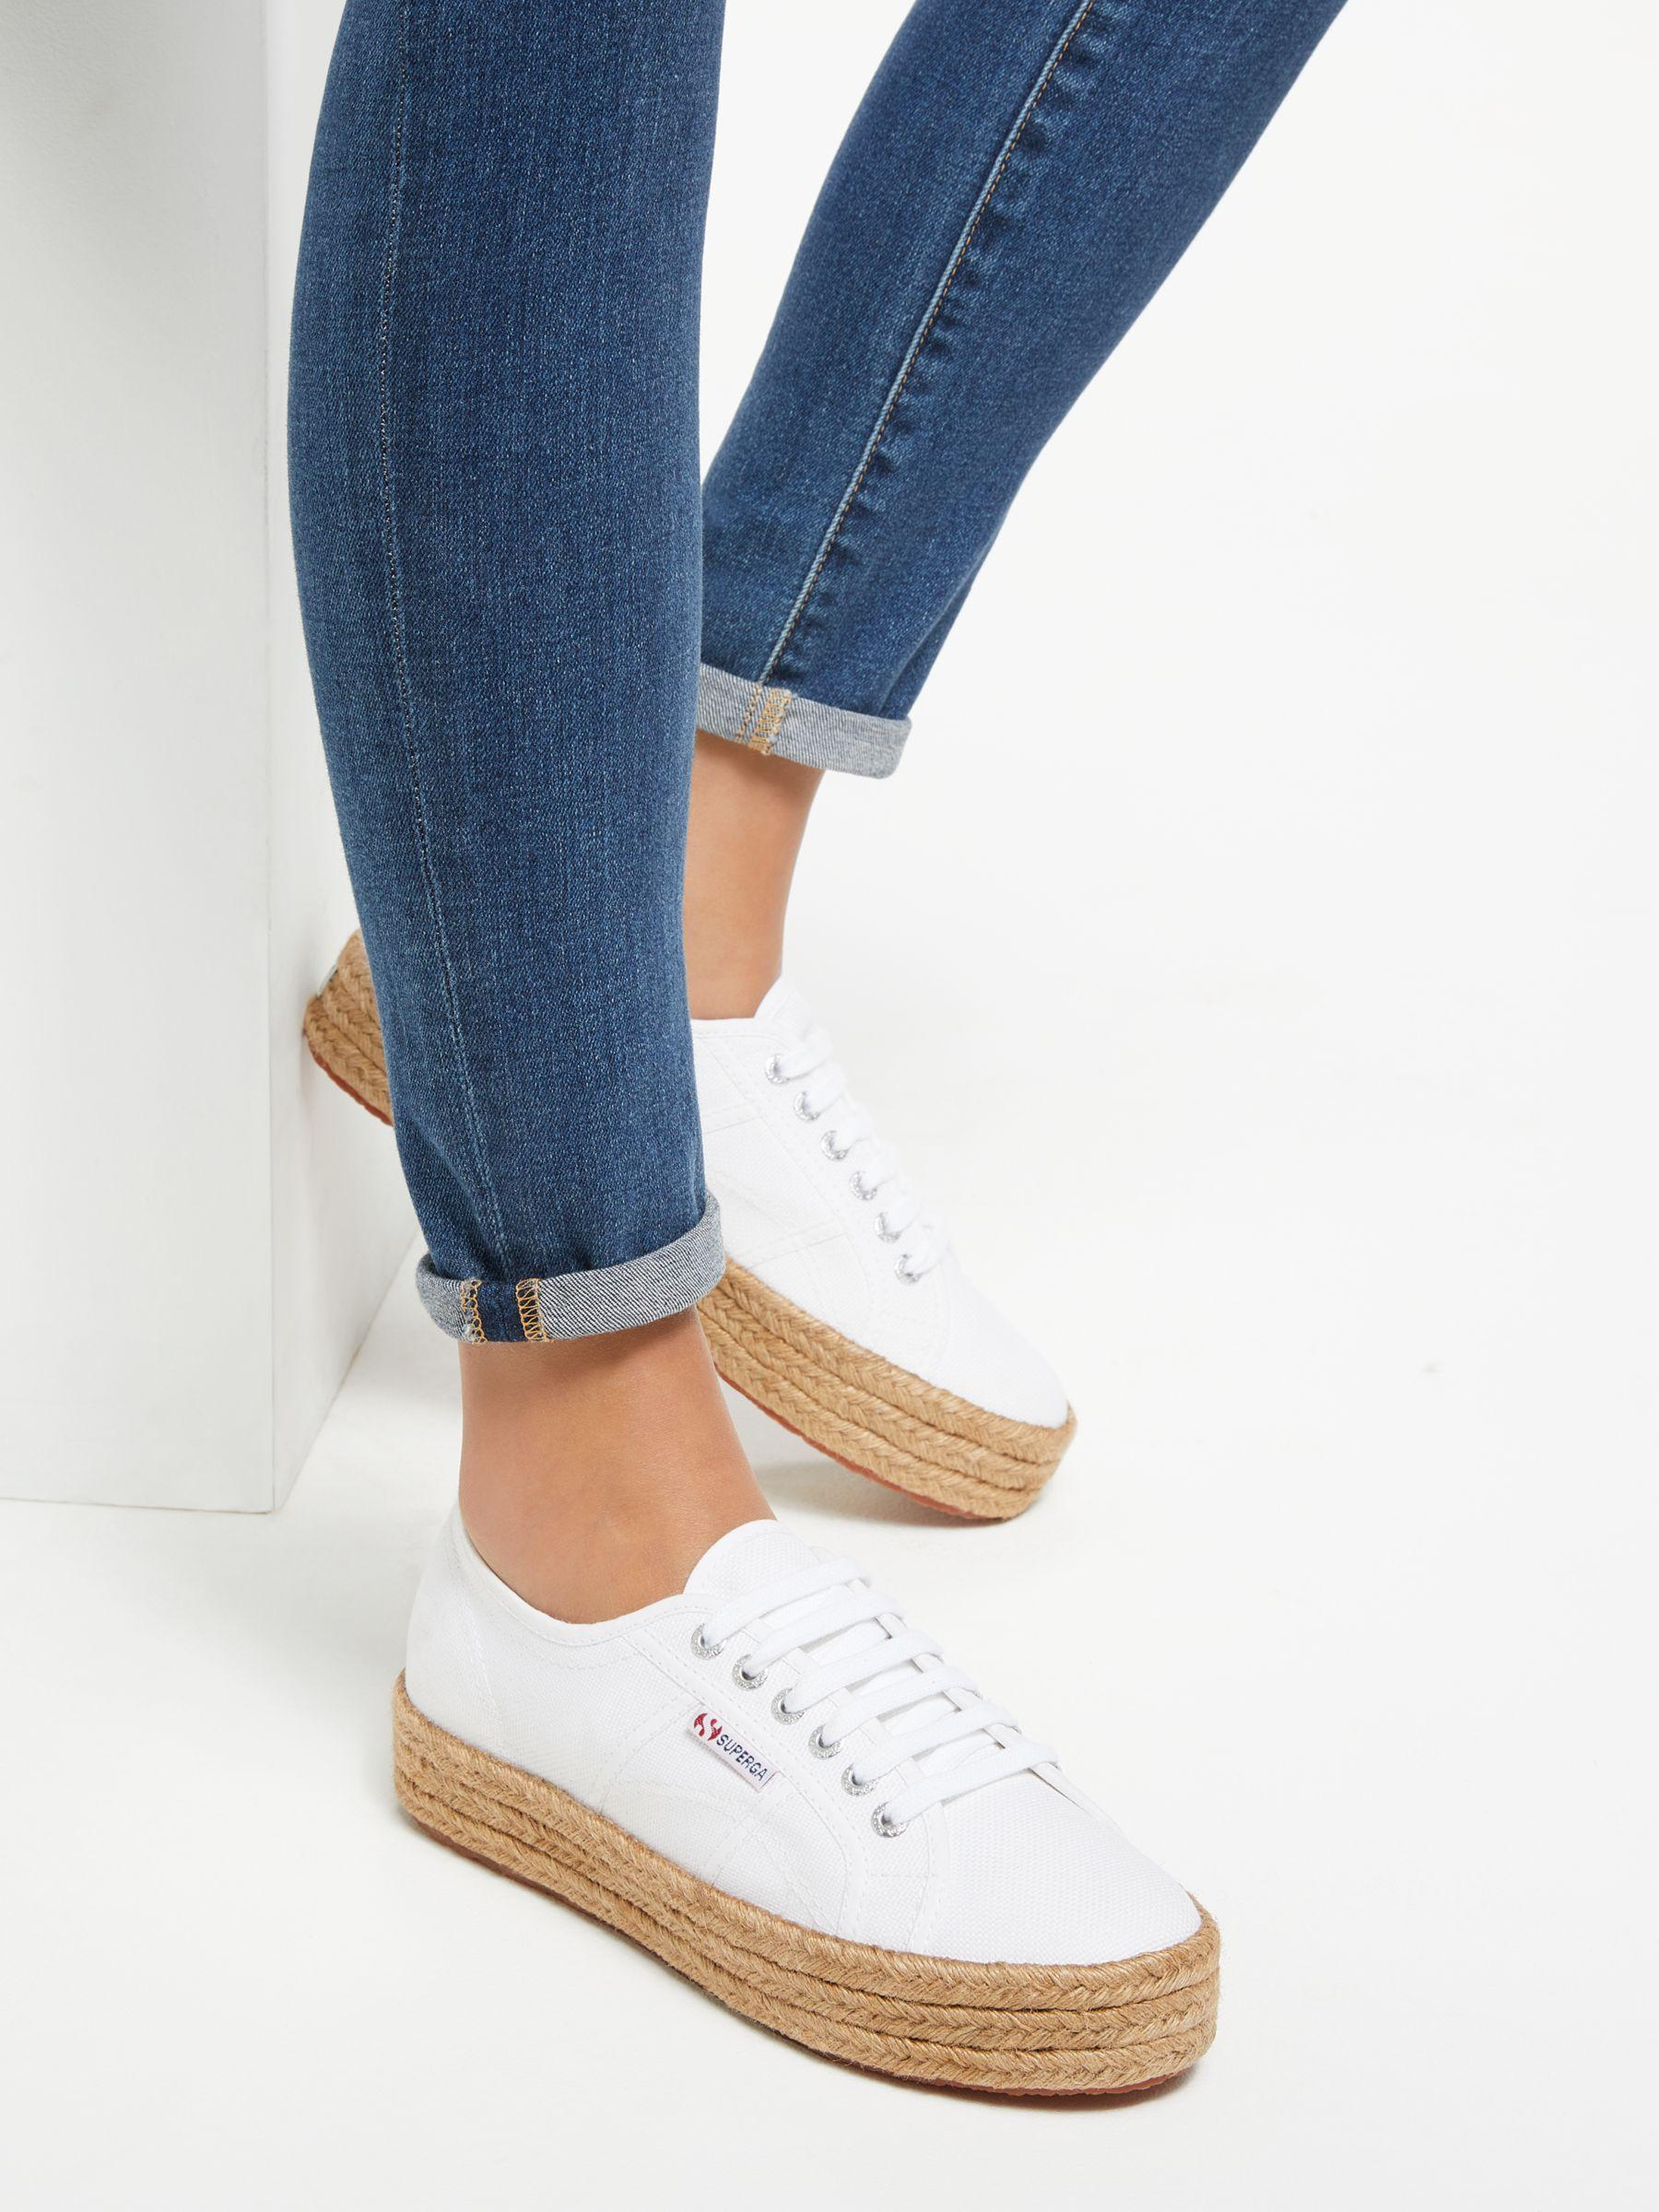 purchase cheap official photos preview of Superga Cotton 2730 Cotropew Flatform Canvas Espadrille Sneakers ...